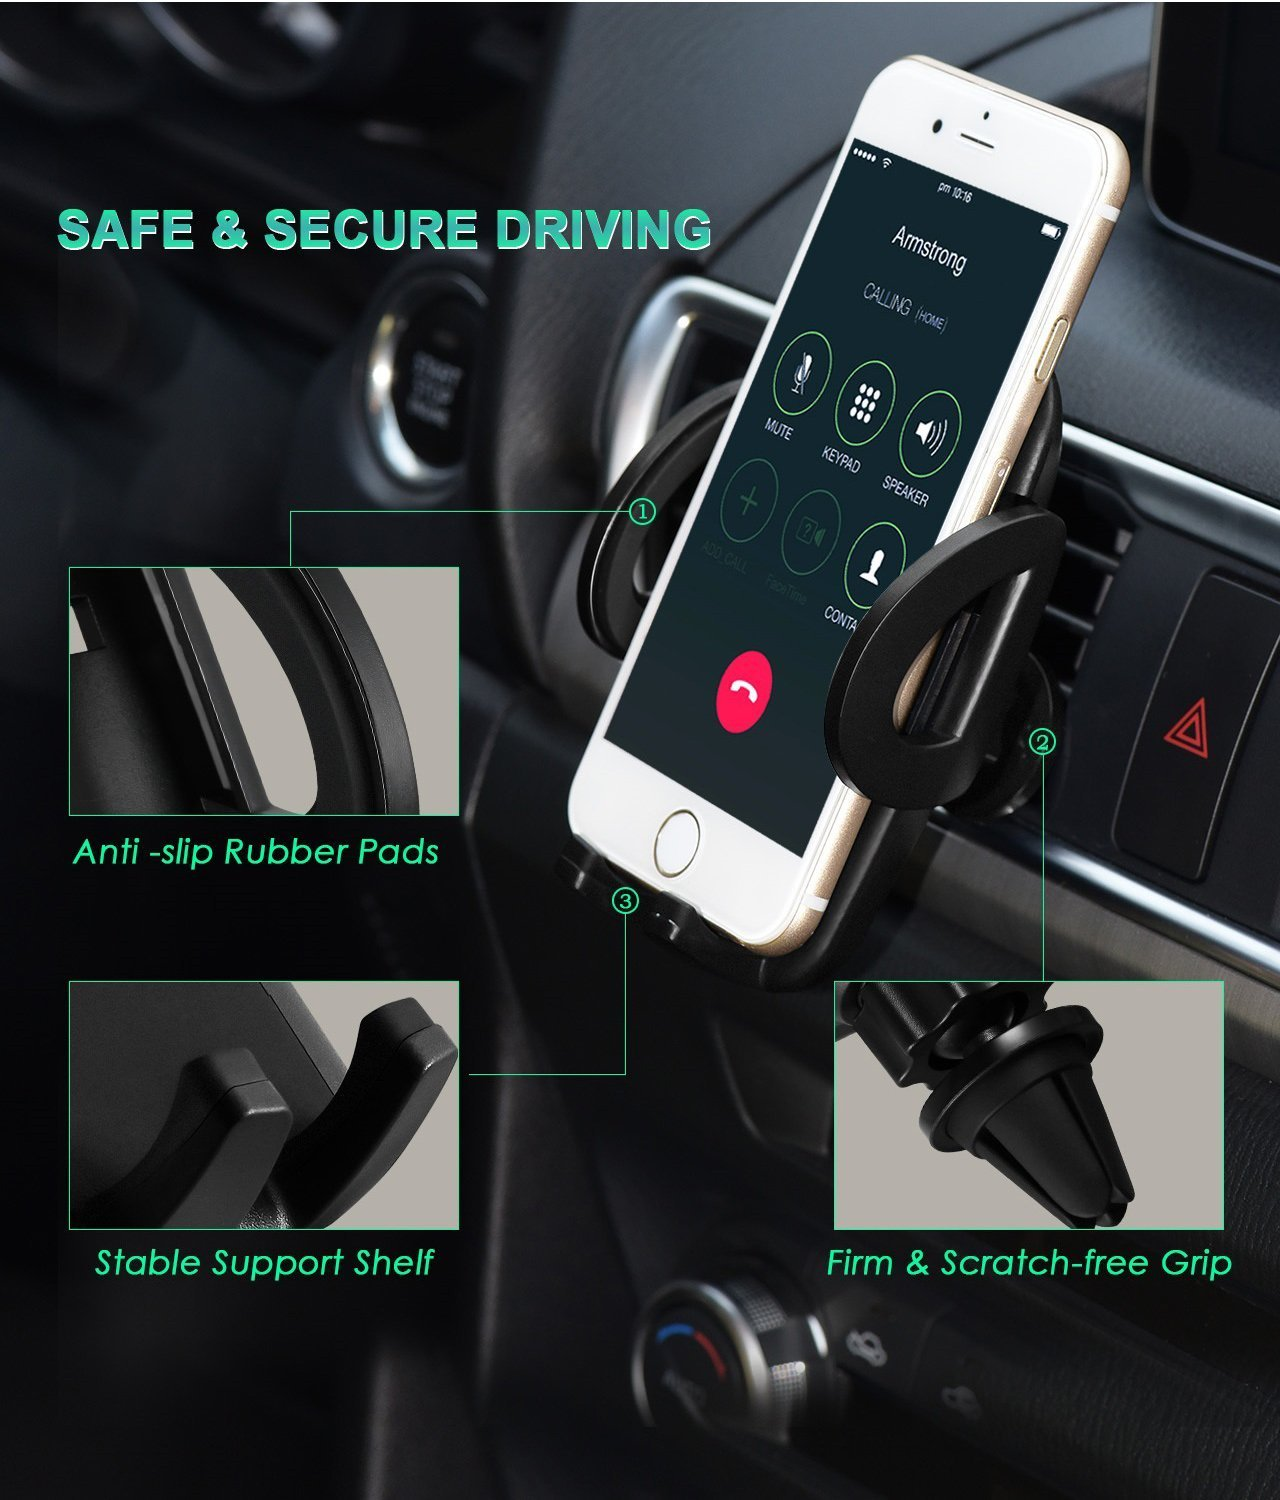 Coding Phone Holder for car Air Vent Phone Holder for Mobile Phones Car Phone Mount,Air Vent Mount Holder for iPhone X//8//8Plus,Galaxy S9//S9+ S8//S8+,Google,LG,HTC and More Smartphones Grey